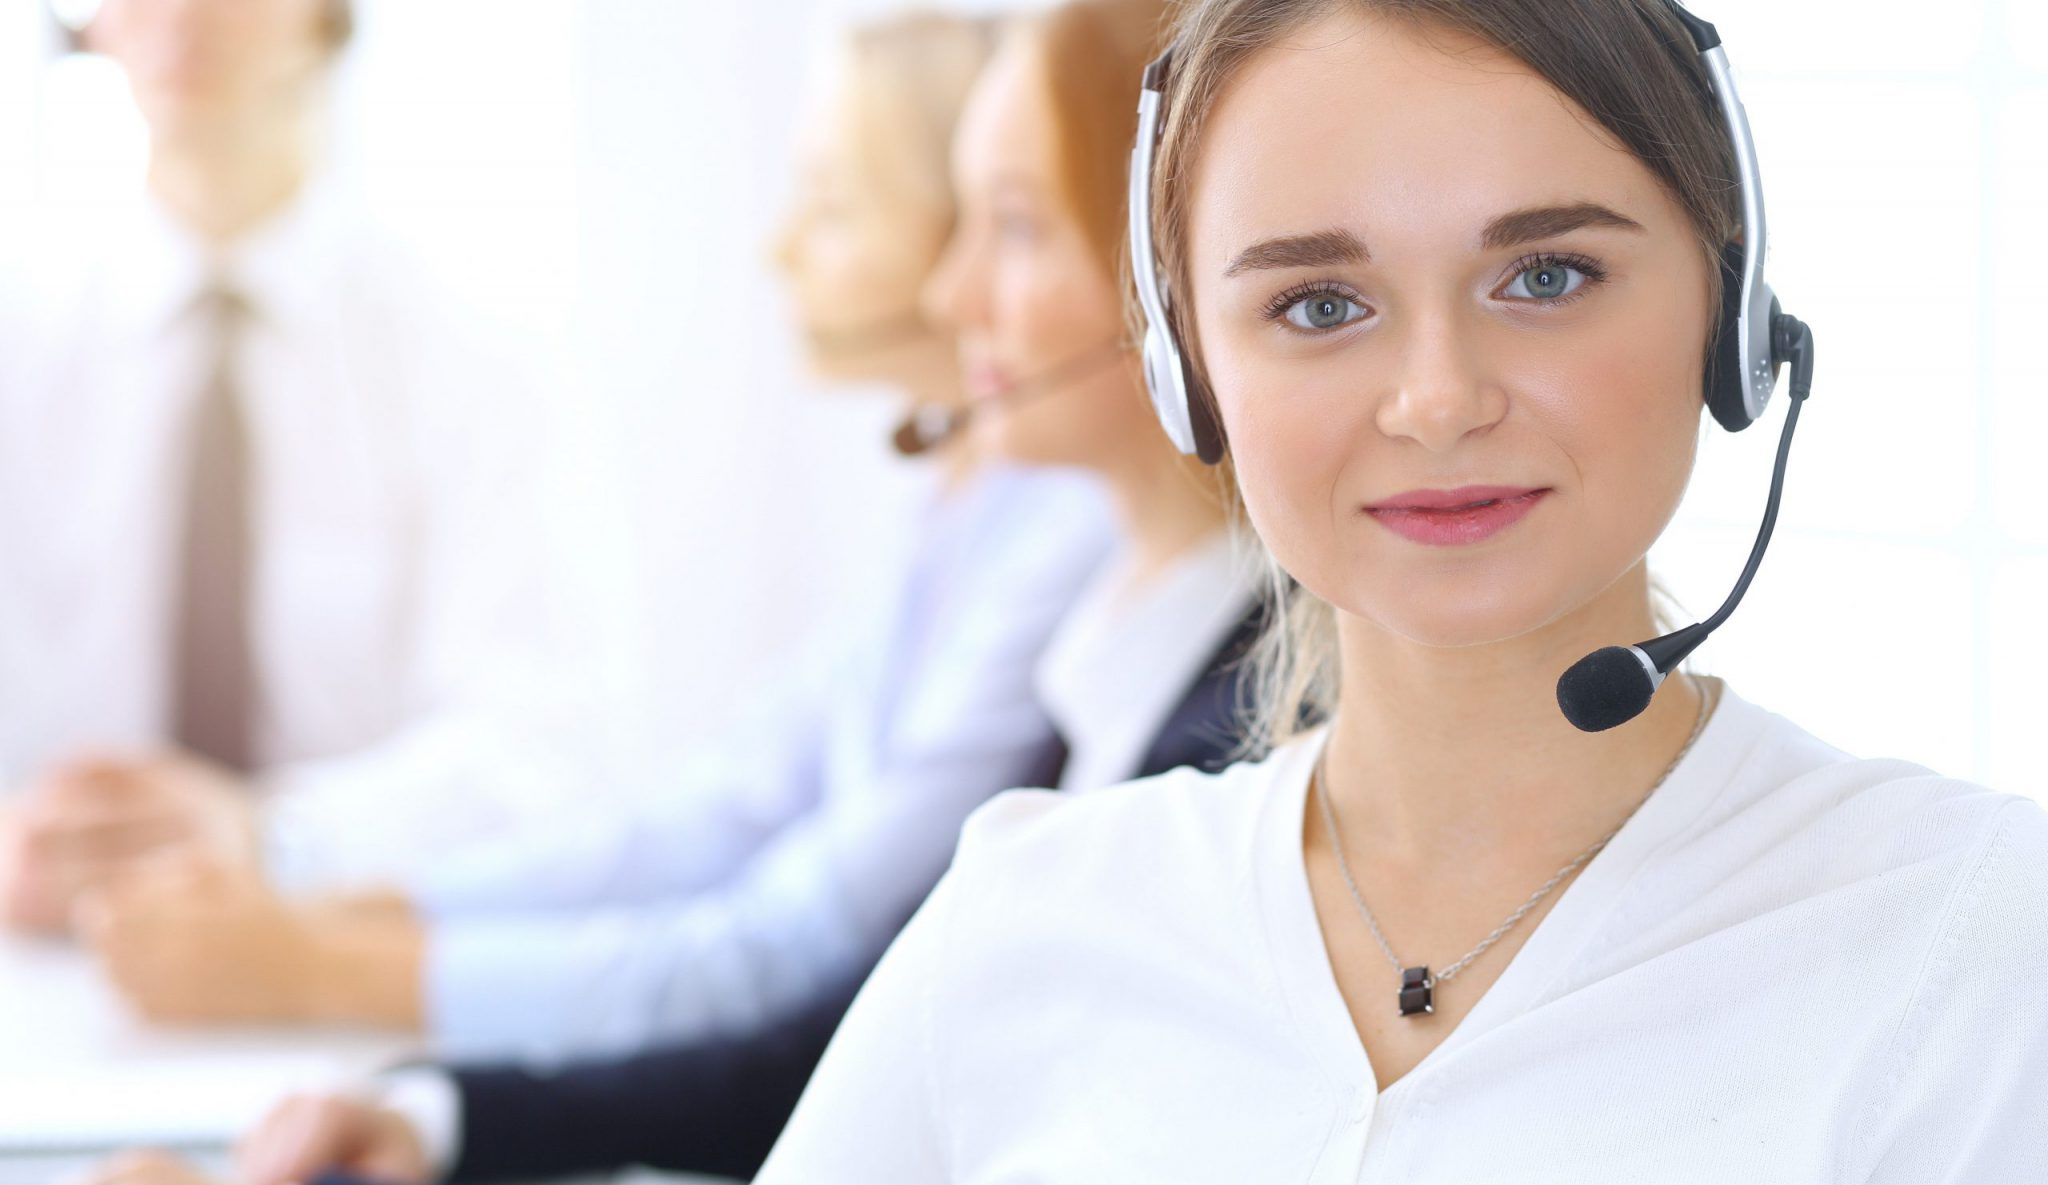 telemarketing company worker female